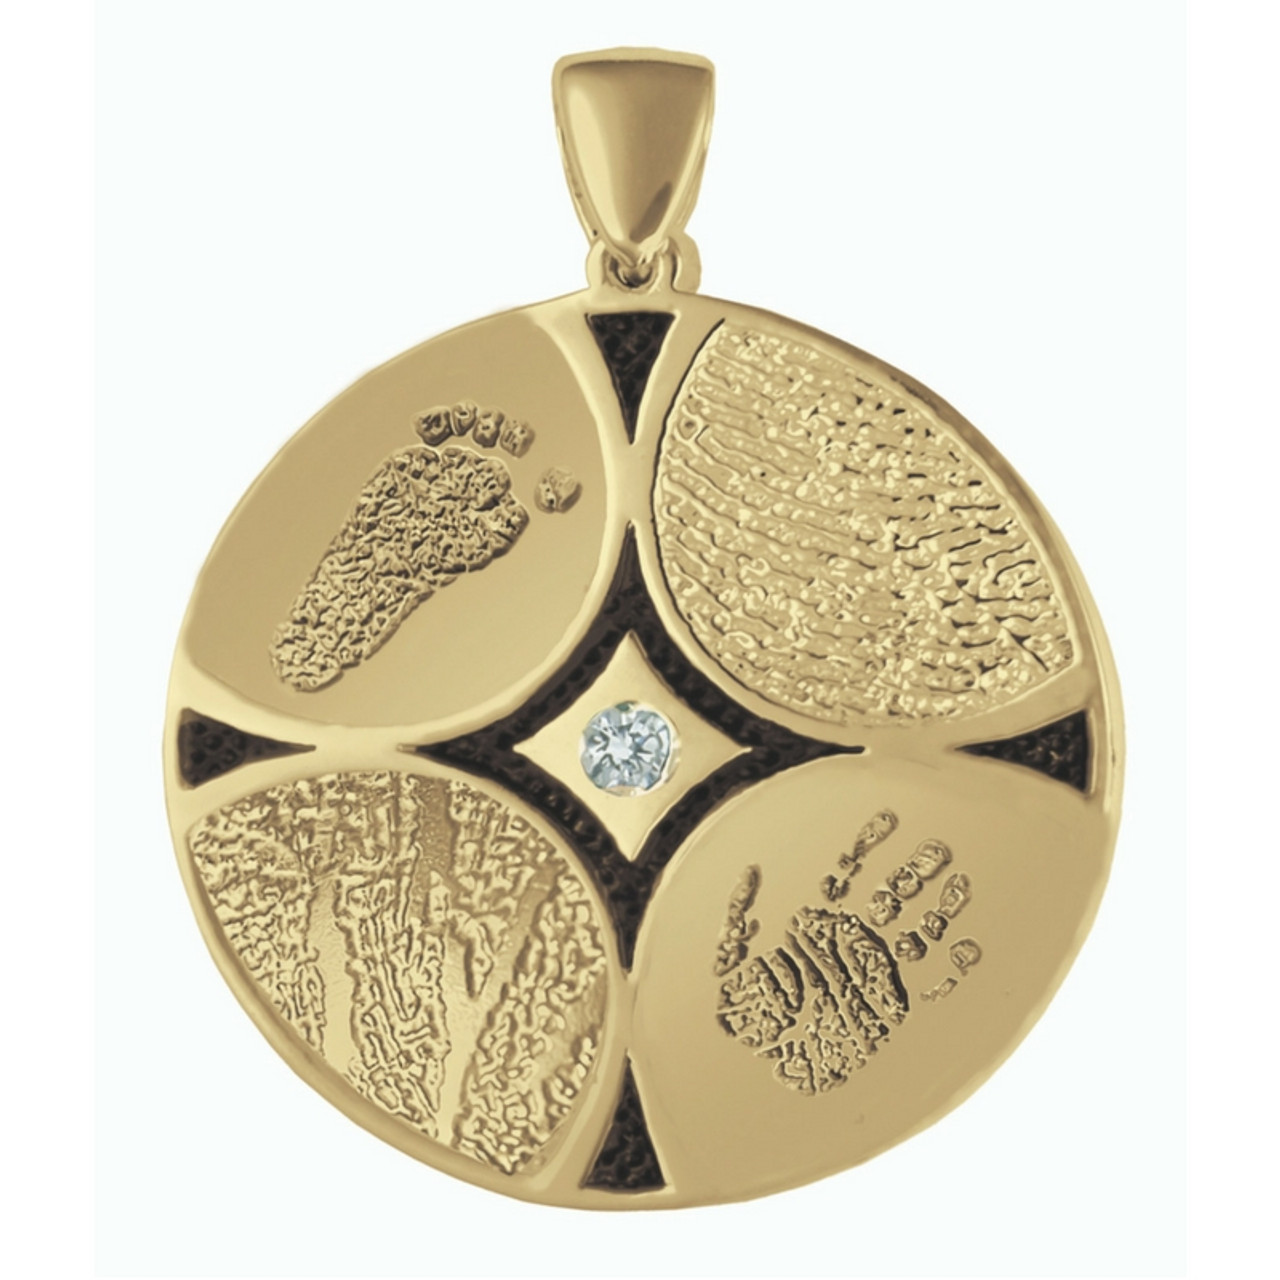 Family Ties 4 in 14k Yellow Gold with 4 Fingerprints and Center Stone